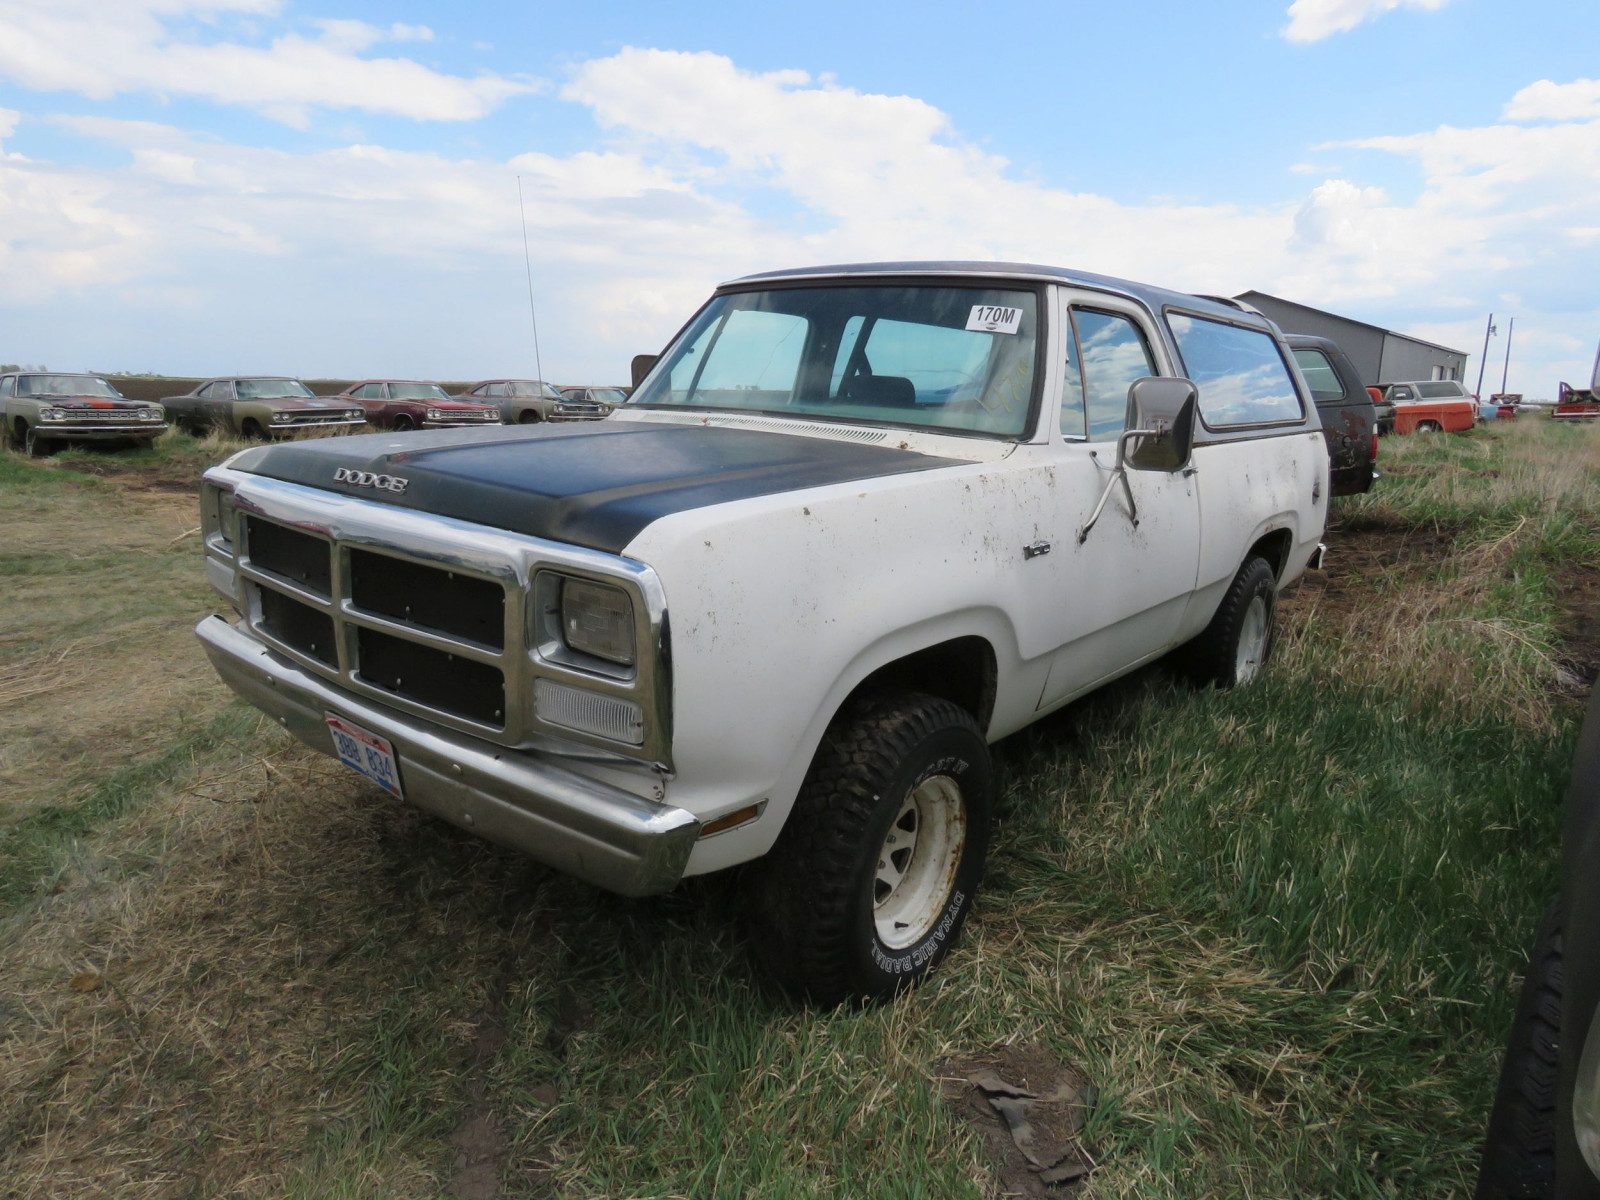 1977 Dodge D100 Pickup - Image 1